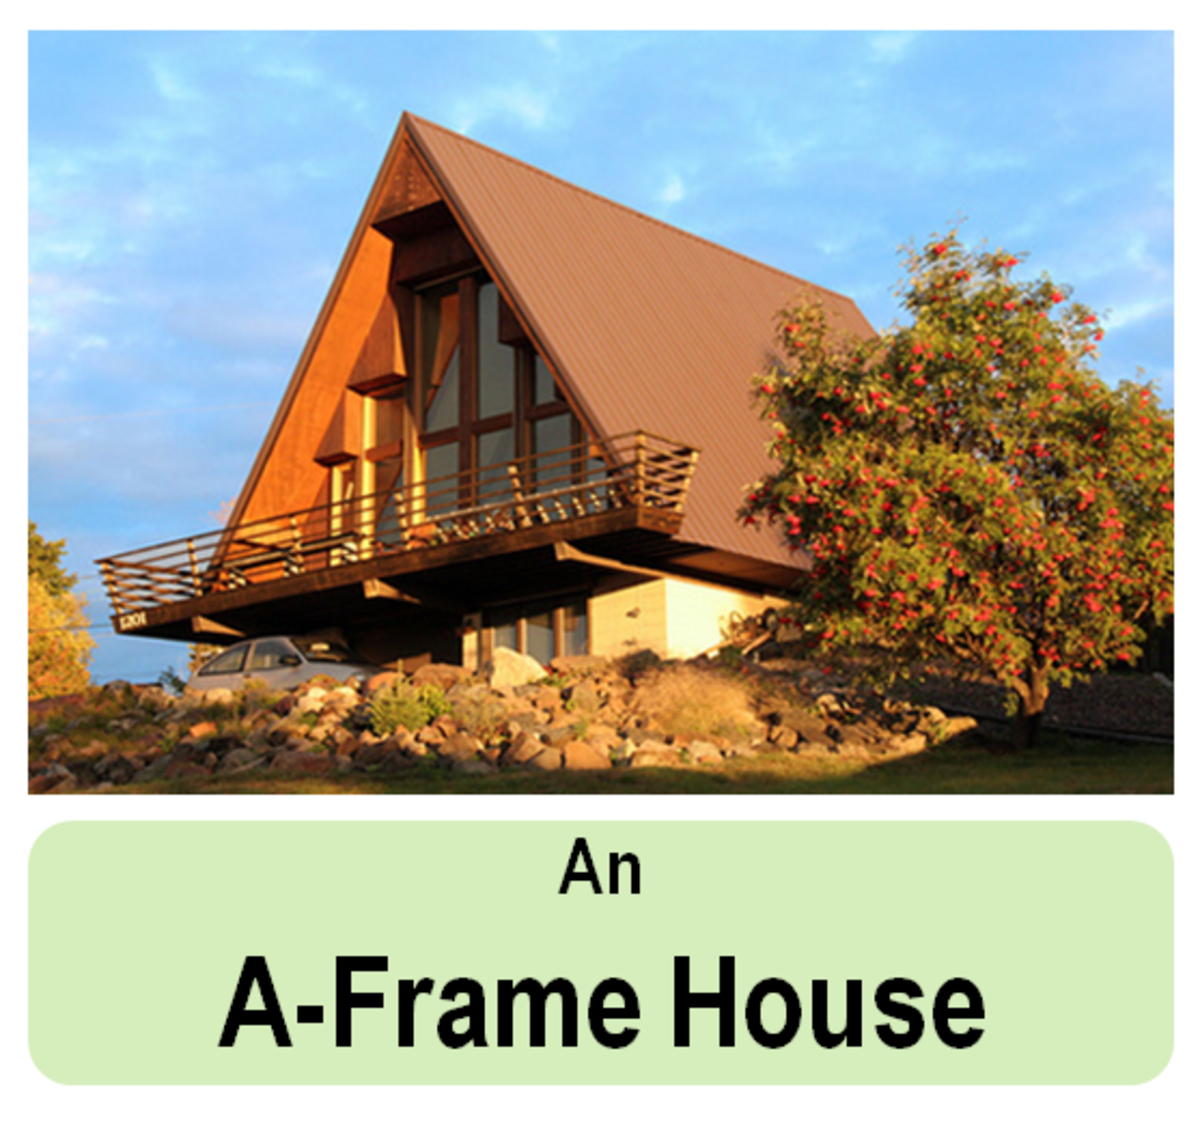 An A-frame house on a hill with a cantilever balcony and a car park below it. Set in an idyllic scenery, this timber home design is great for a secluded area.